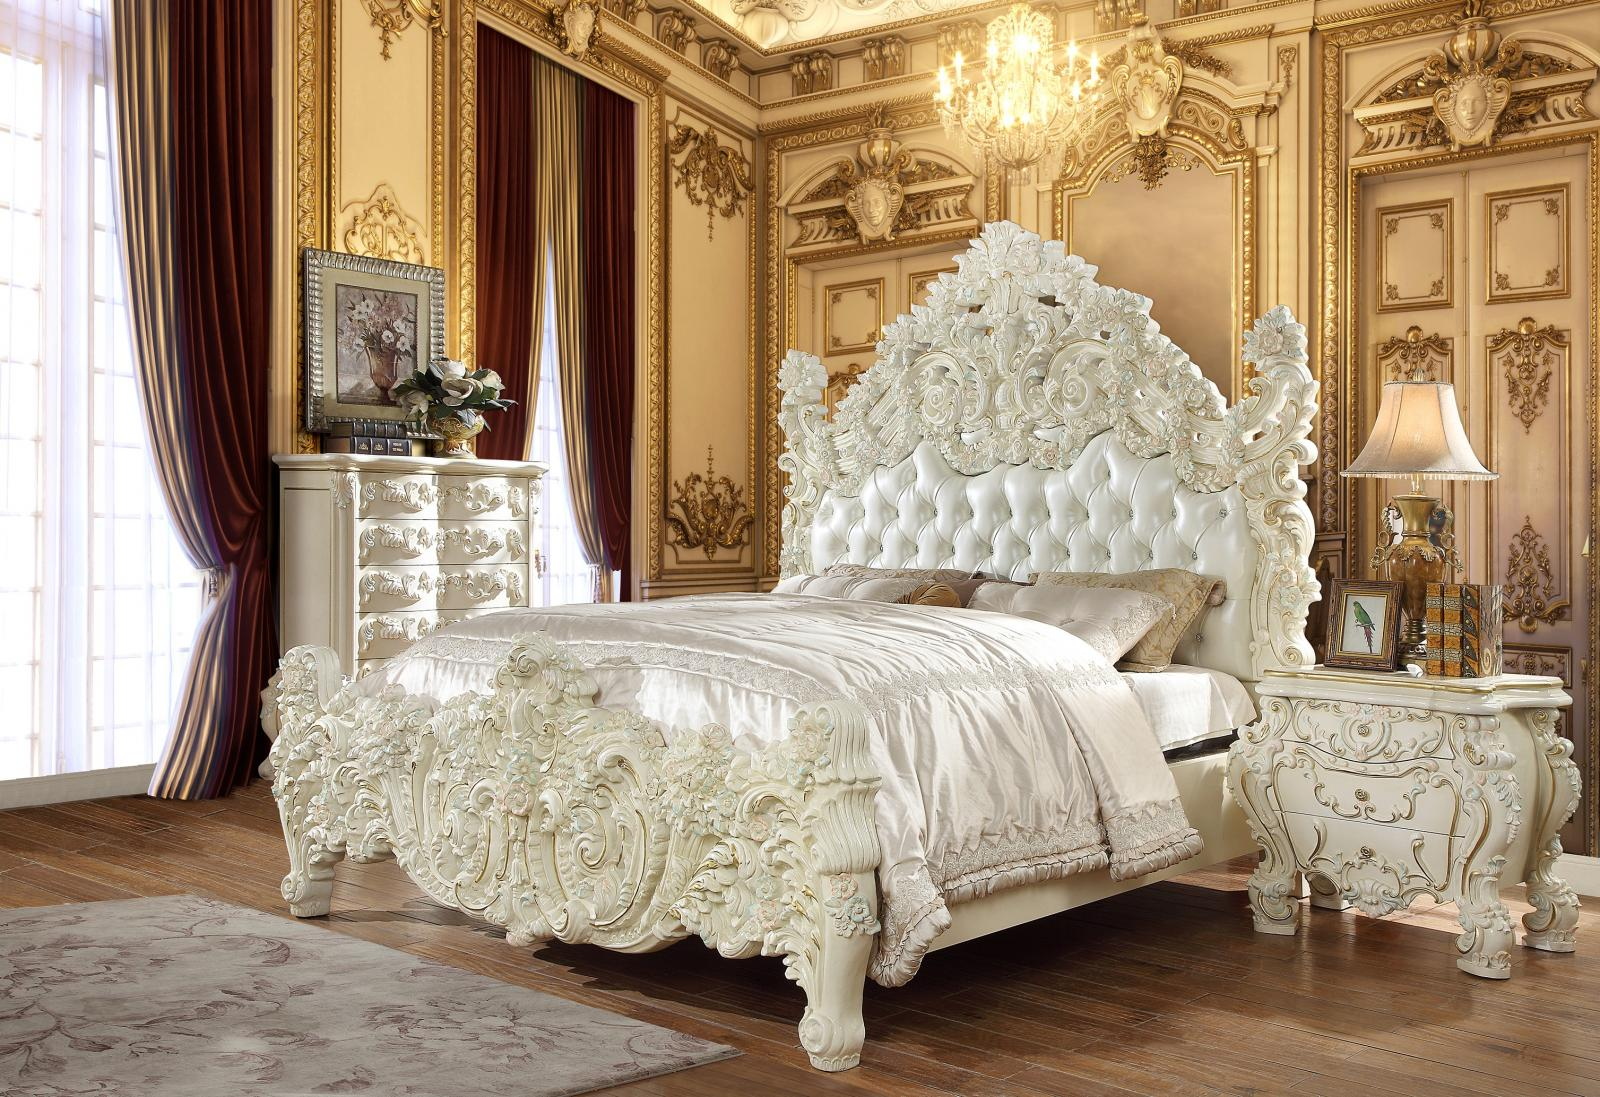 Traditional Gold, White Faux Leather and Wood, Solid Hardwood Sleigh Bedroom Set 6 pcs HD-8089 by Homey Design